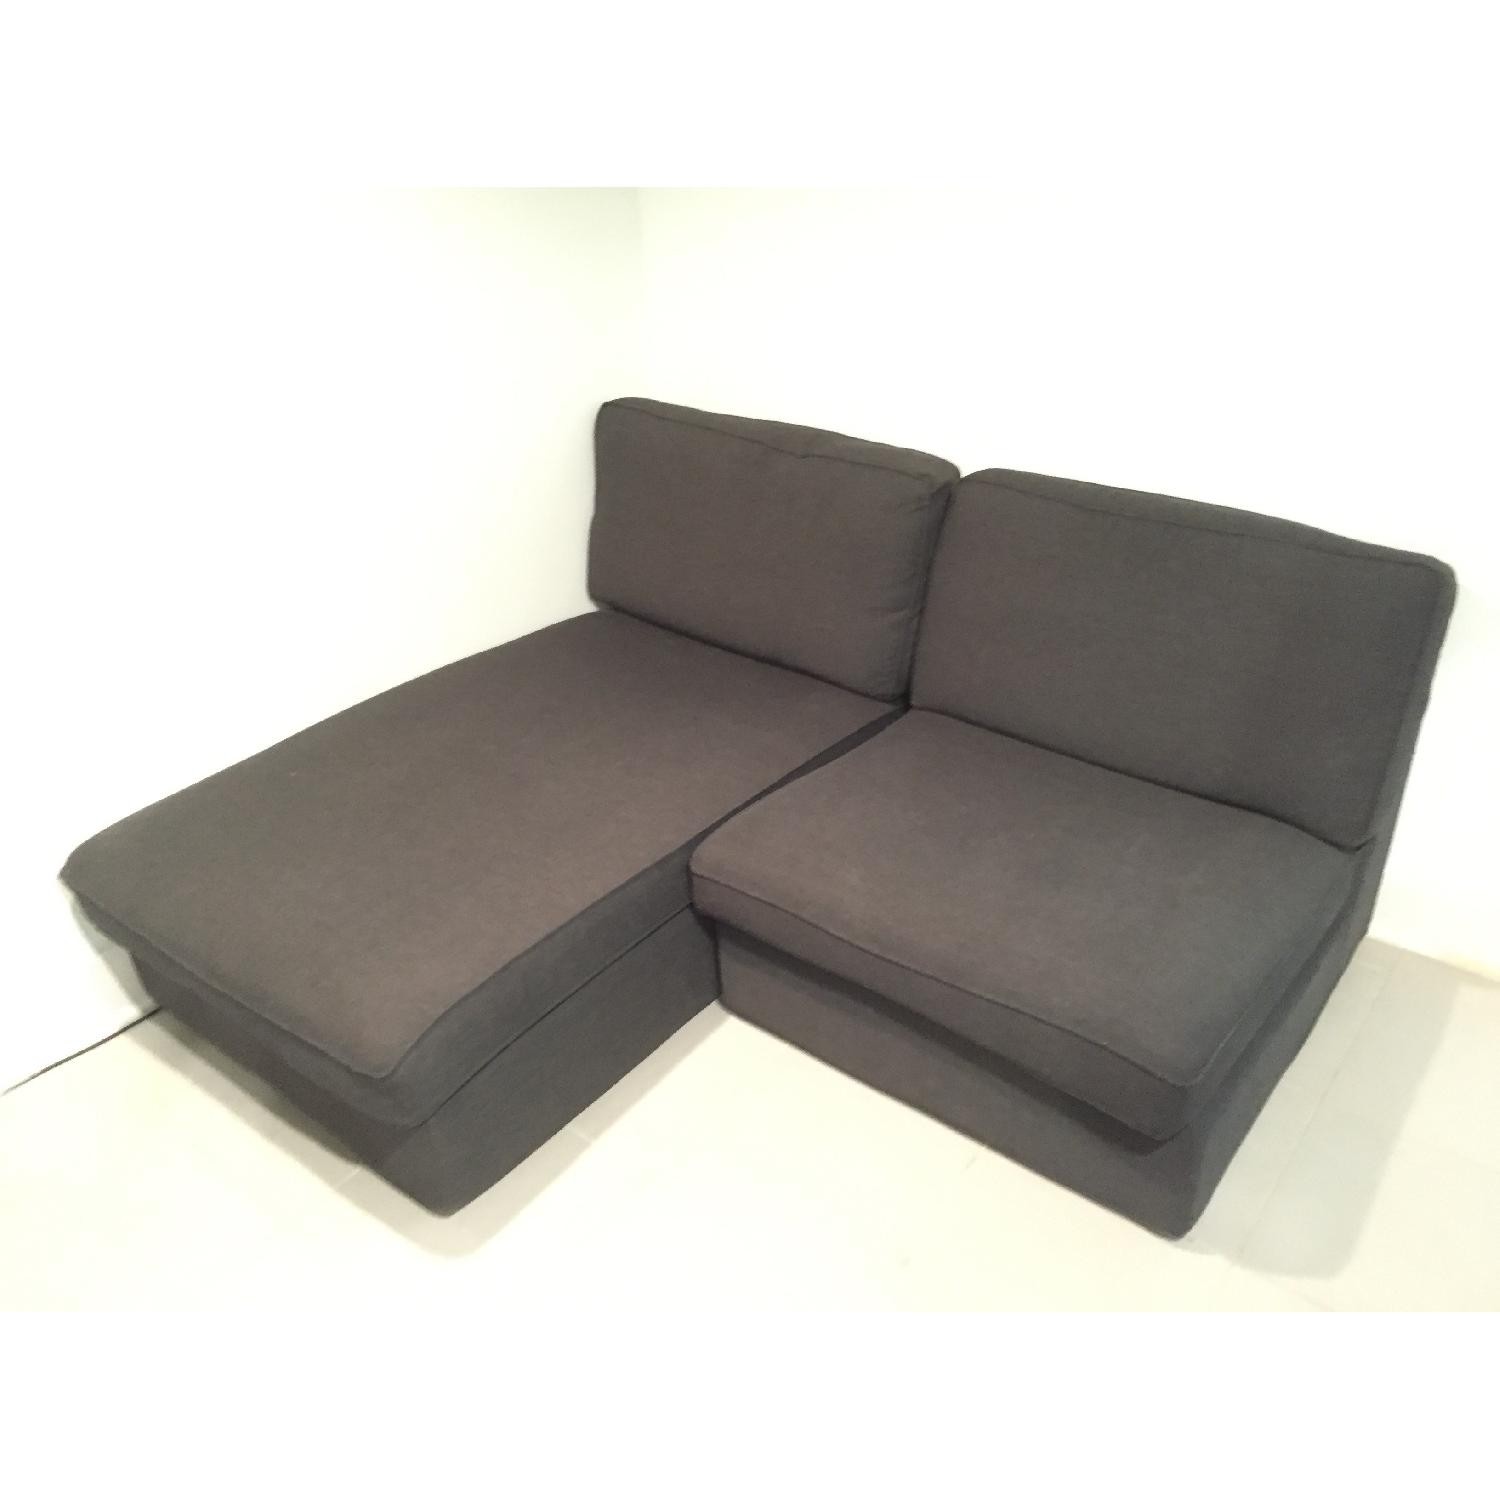 Ikea Kivik Chaise w/ One Seat Section - image-3